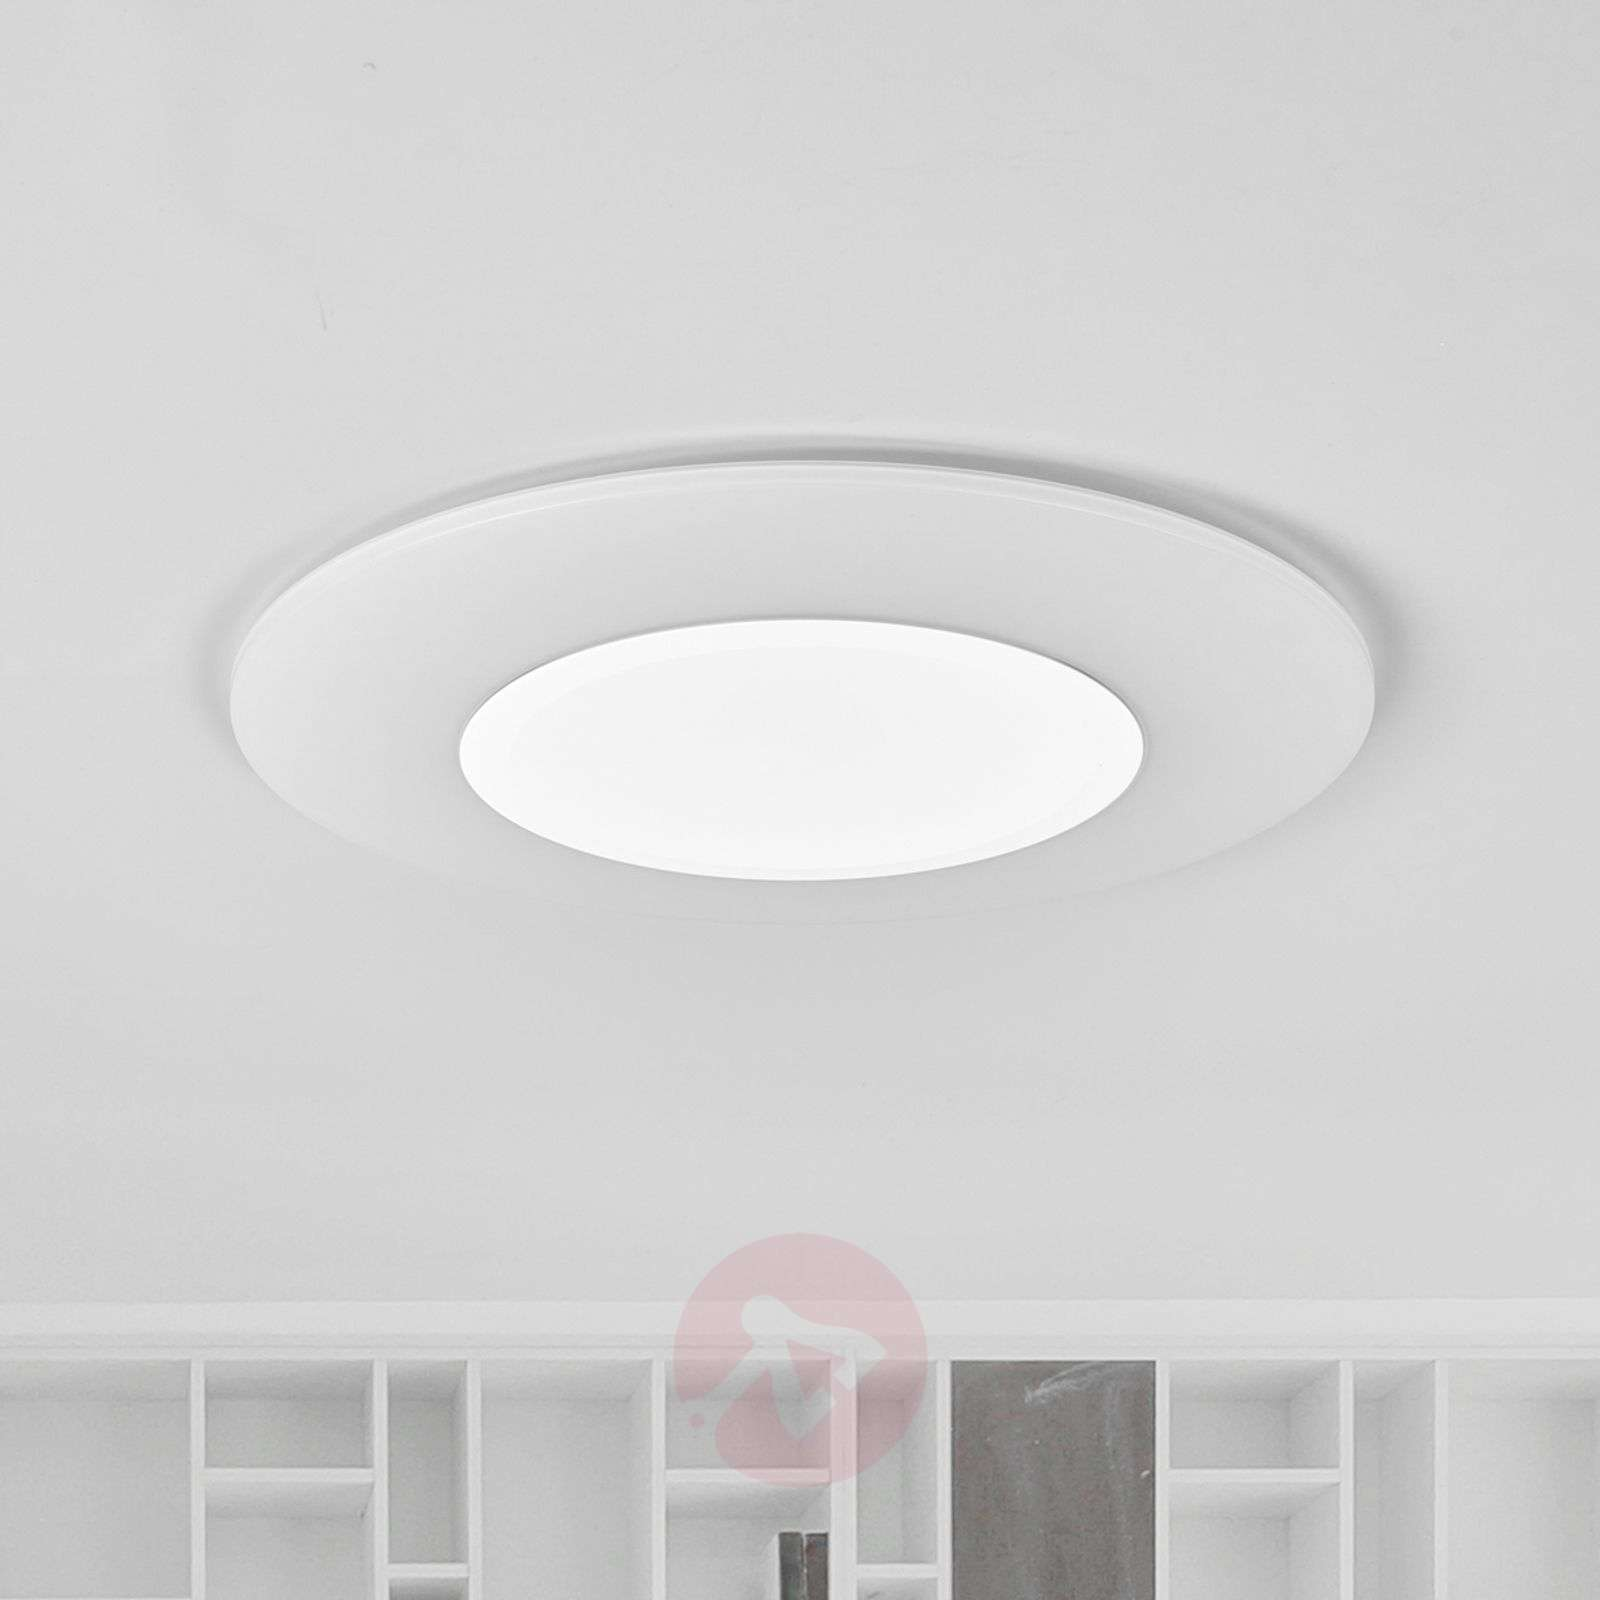 Very flat ceiling light led flat 1200 lumens 7261139 01